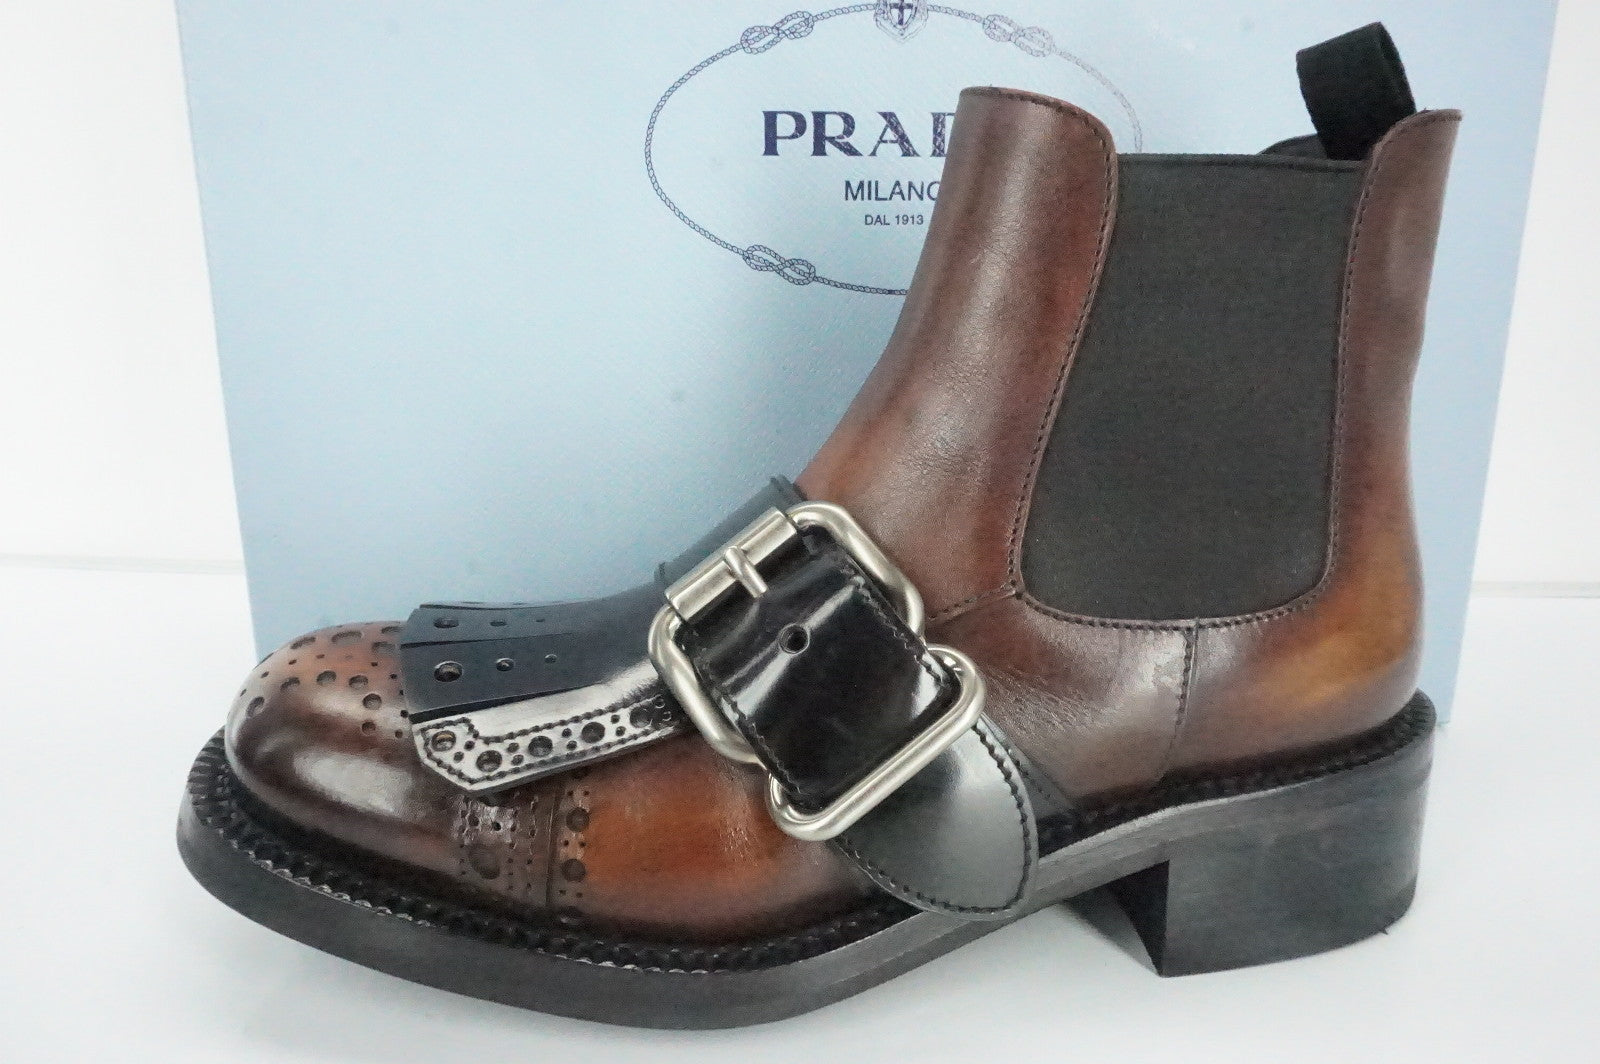 Prada Brown Leather Buckle Kiltie Chelsea Ankle Boots SZ 35 Combat NIB $1250